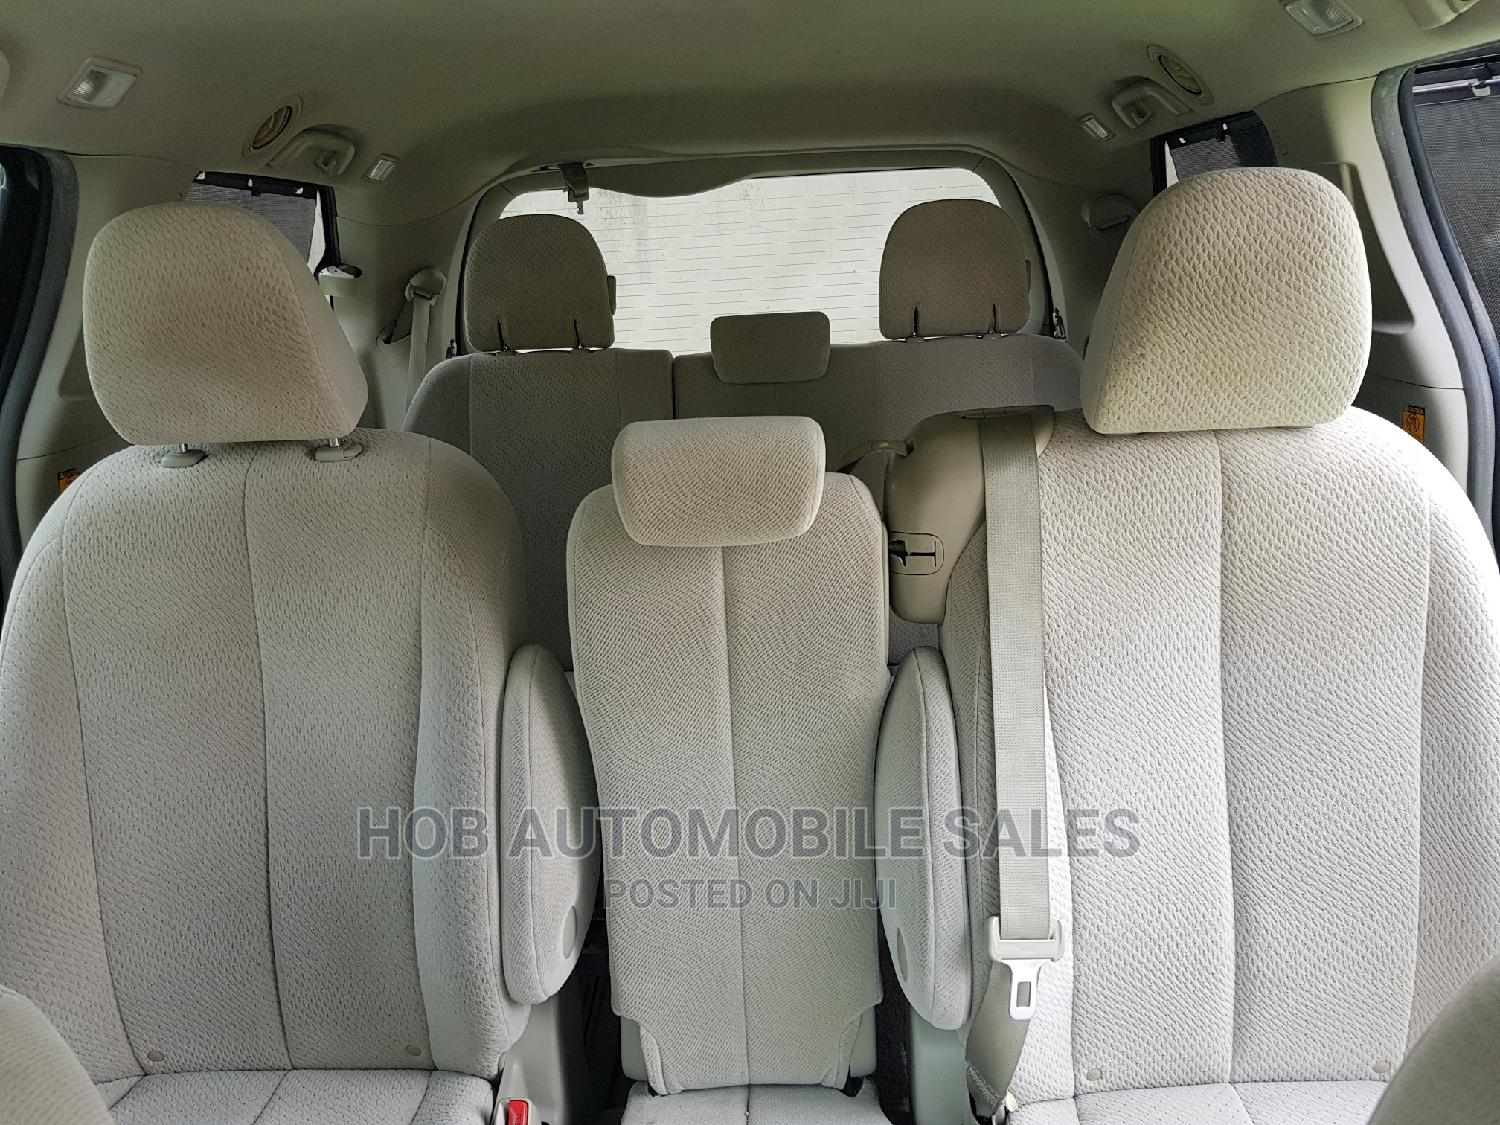 Archive: Toyota Sienna 2012 LE 7 Passenger Green